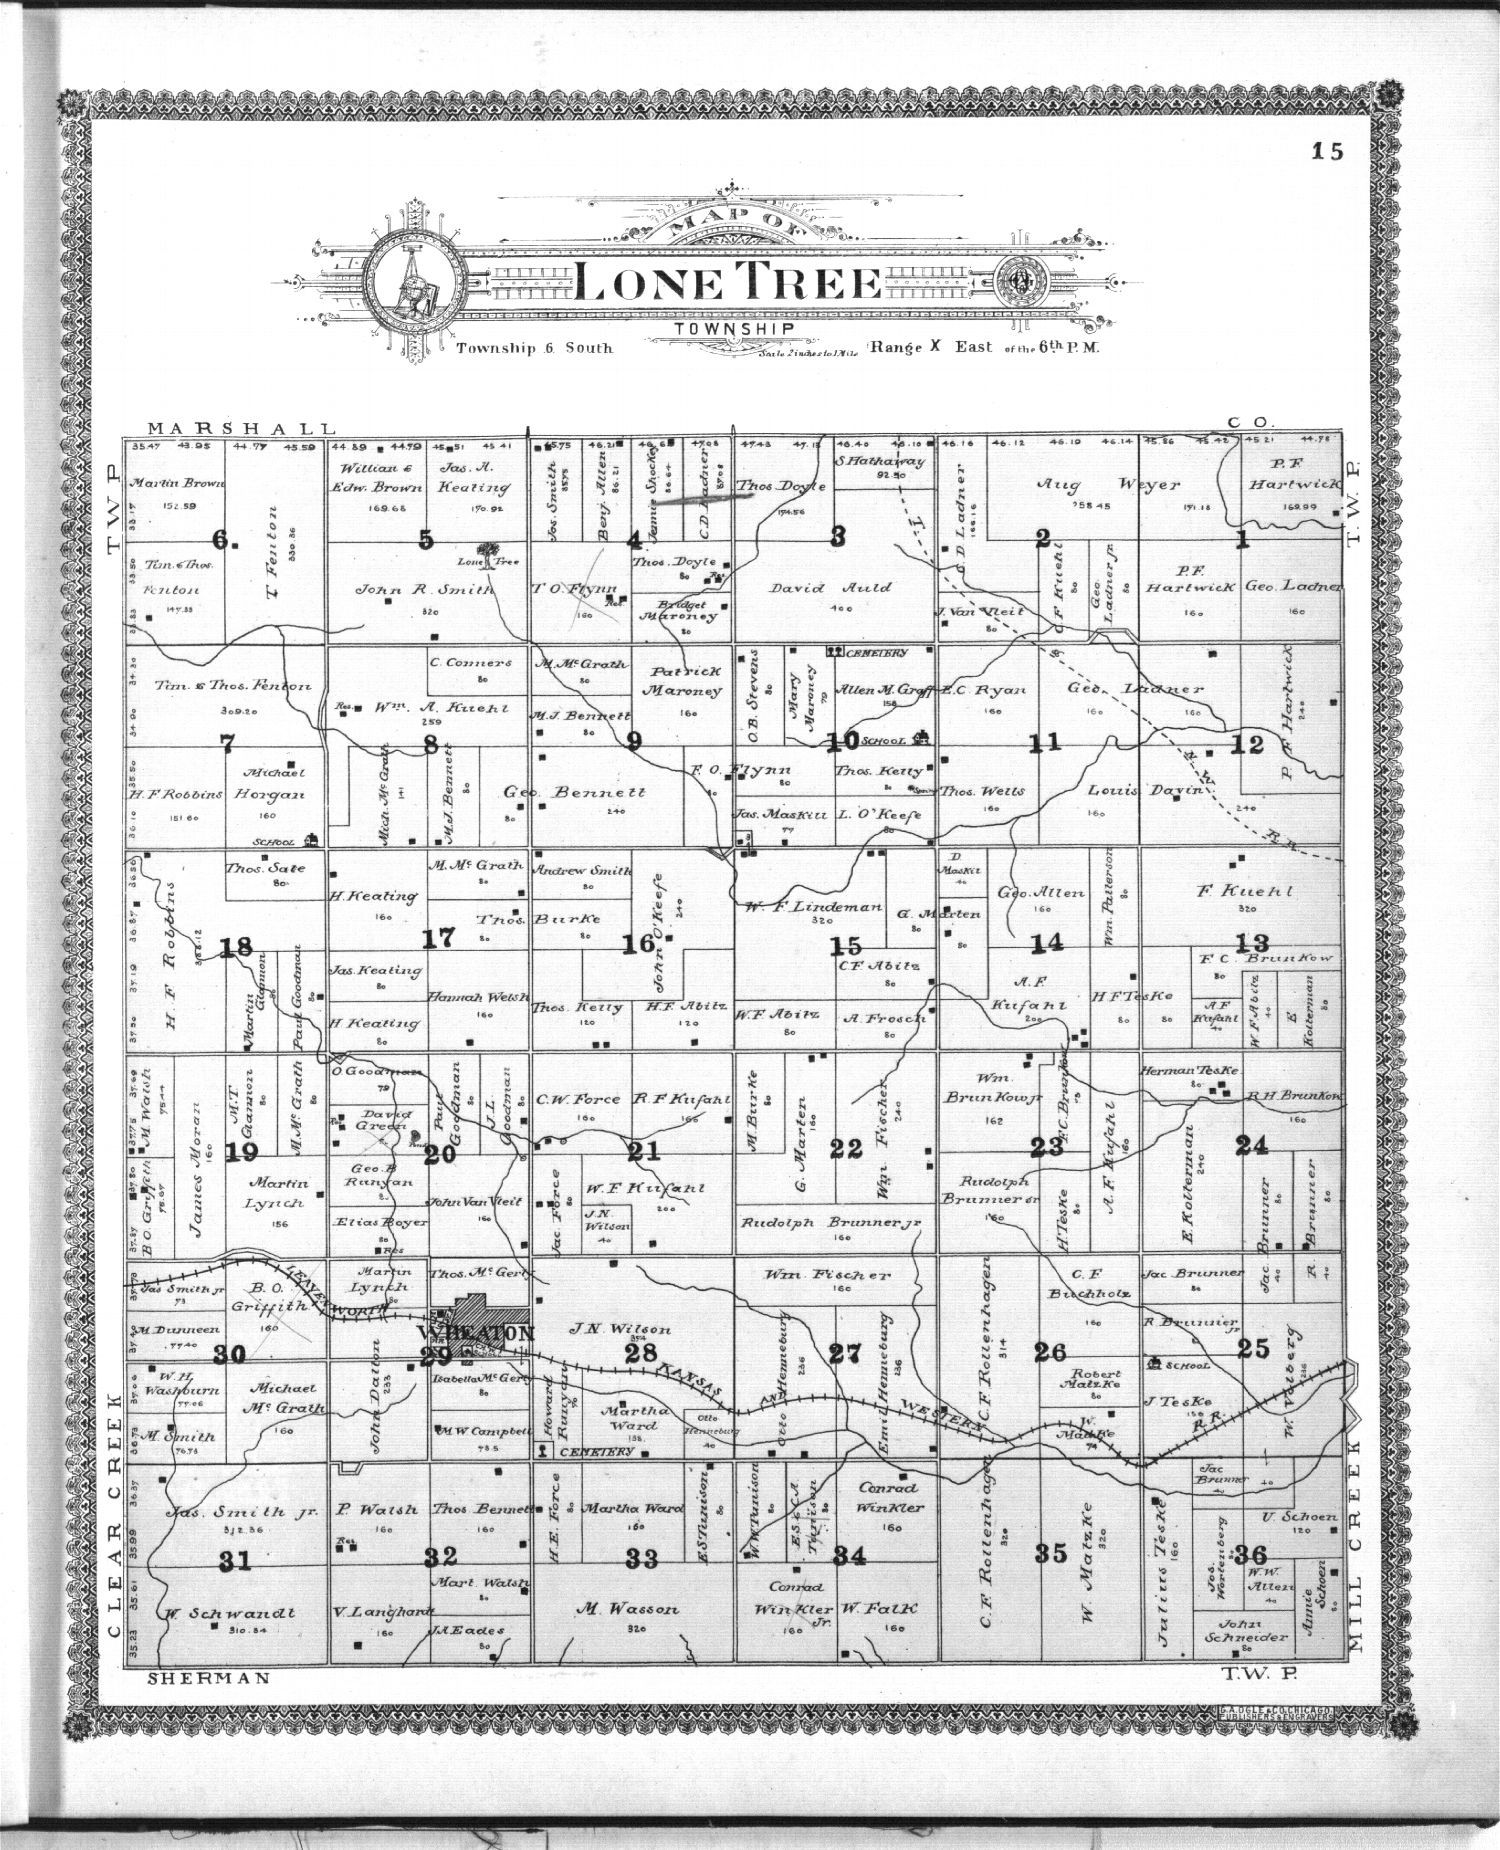 Standard atlas of Pottawatomie County, Kansas - 15